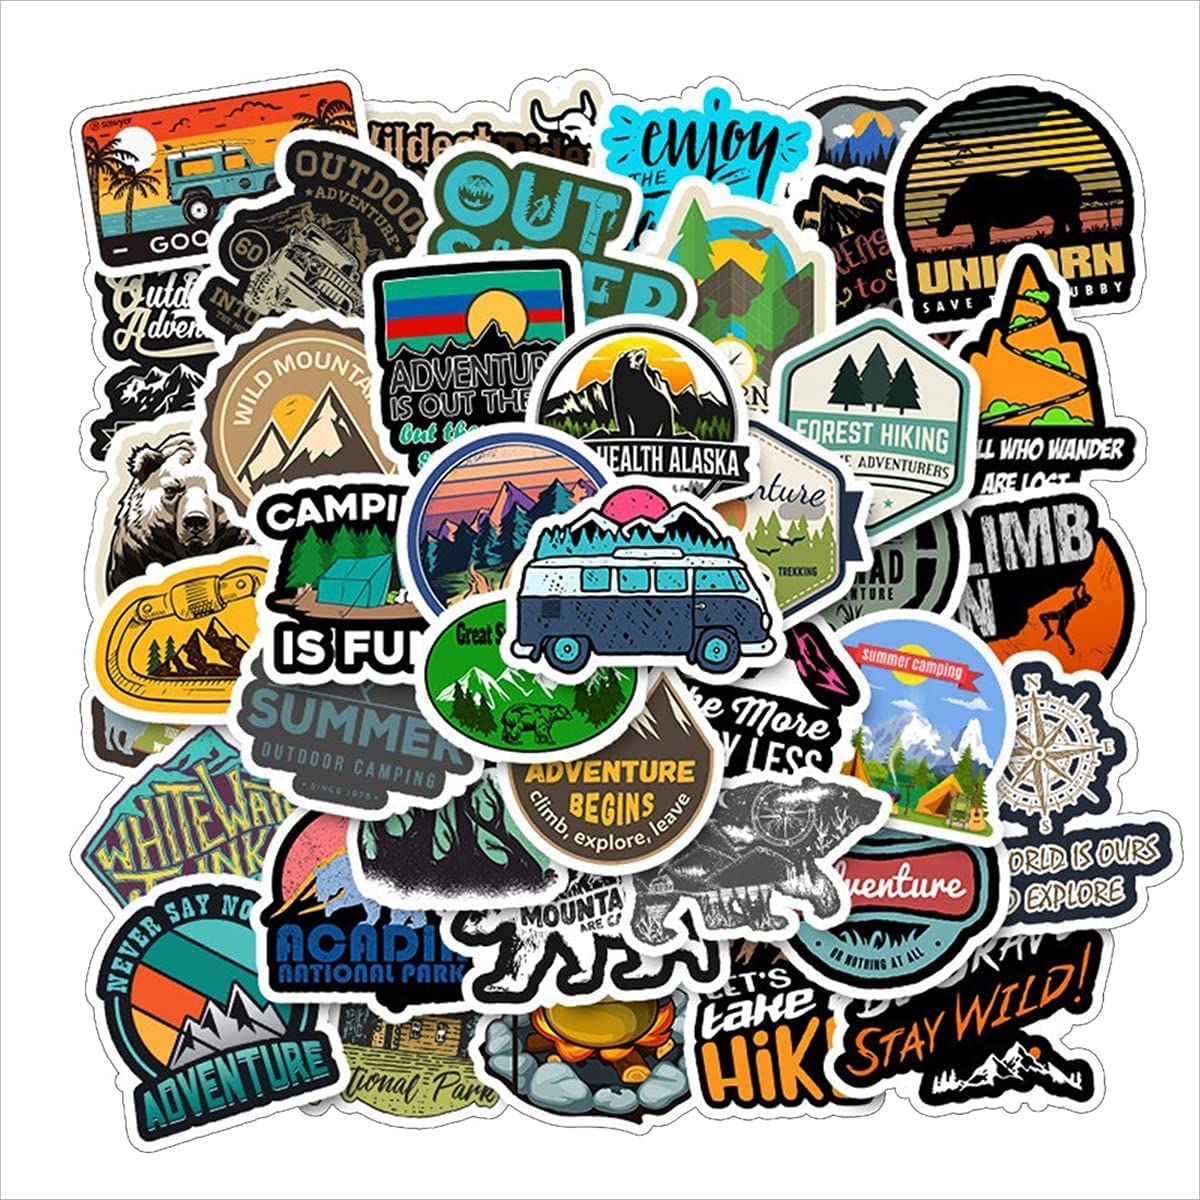 Outdoor Stickers 50PCS Nature Mountain Stickers Camping Adventure Climbing Stickers Skiing Wilderness Hiking Stickers Waterproof Vinyl Decals for Laptop Water Bottles Skateboard Bumper Phone Car Bike